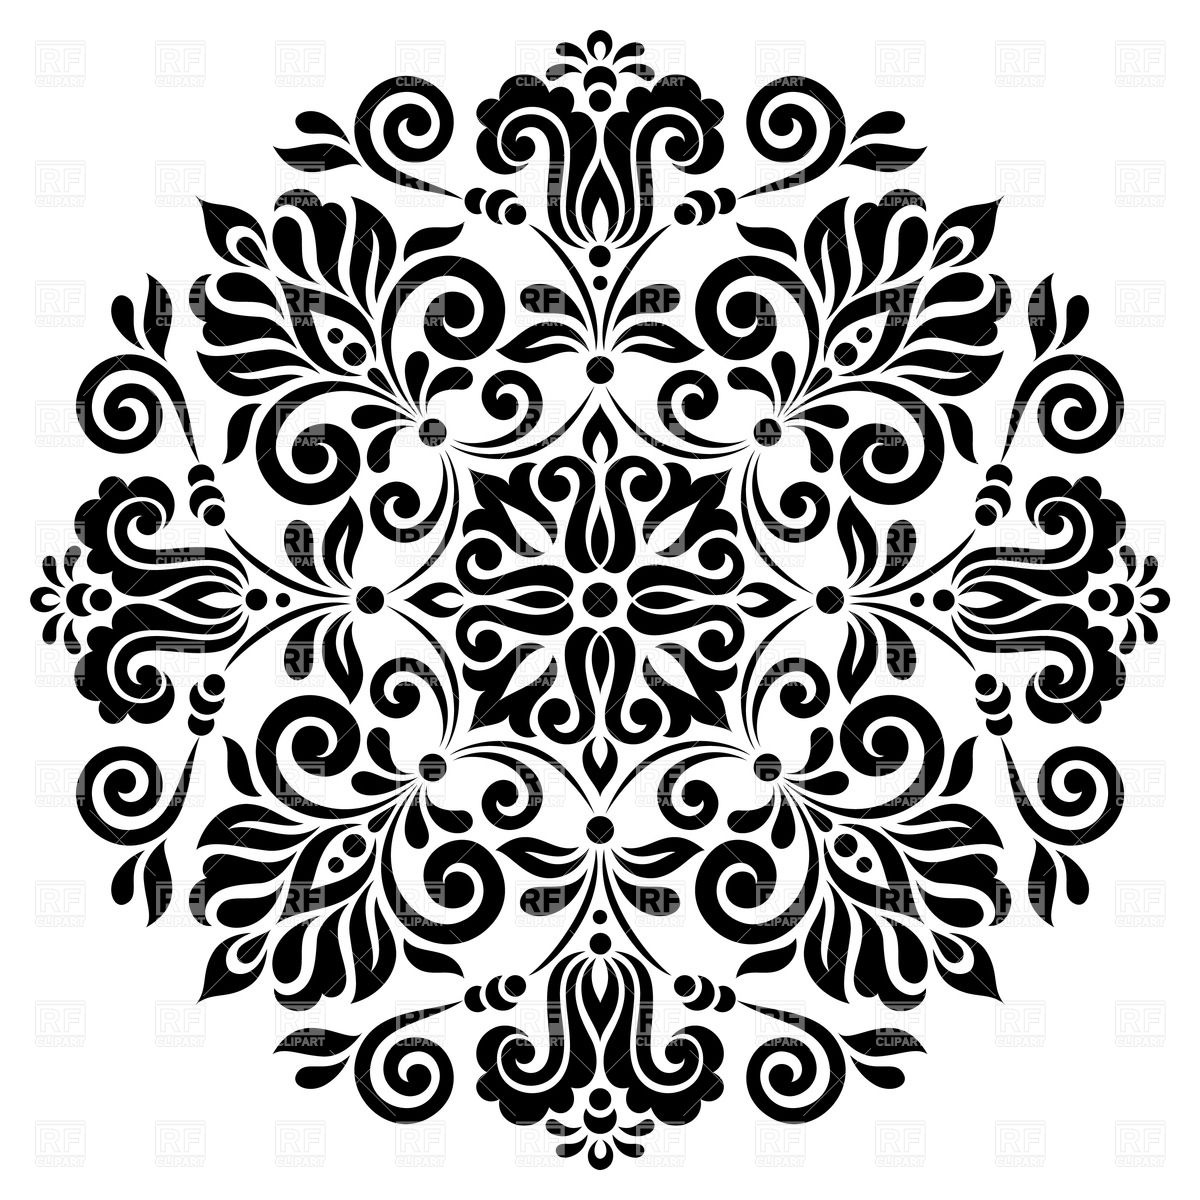 Flower patterns clipart clip art black and white download Flower Pattern Clipart - Clipart Kid clip art black and white download